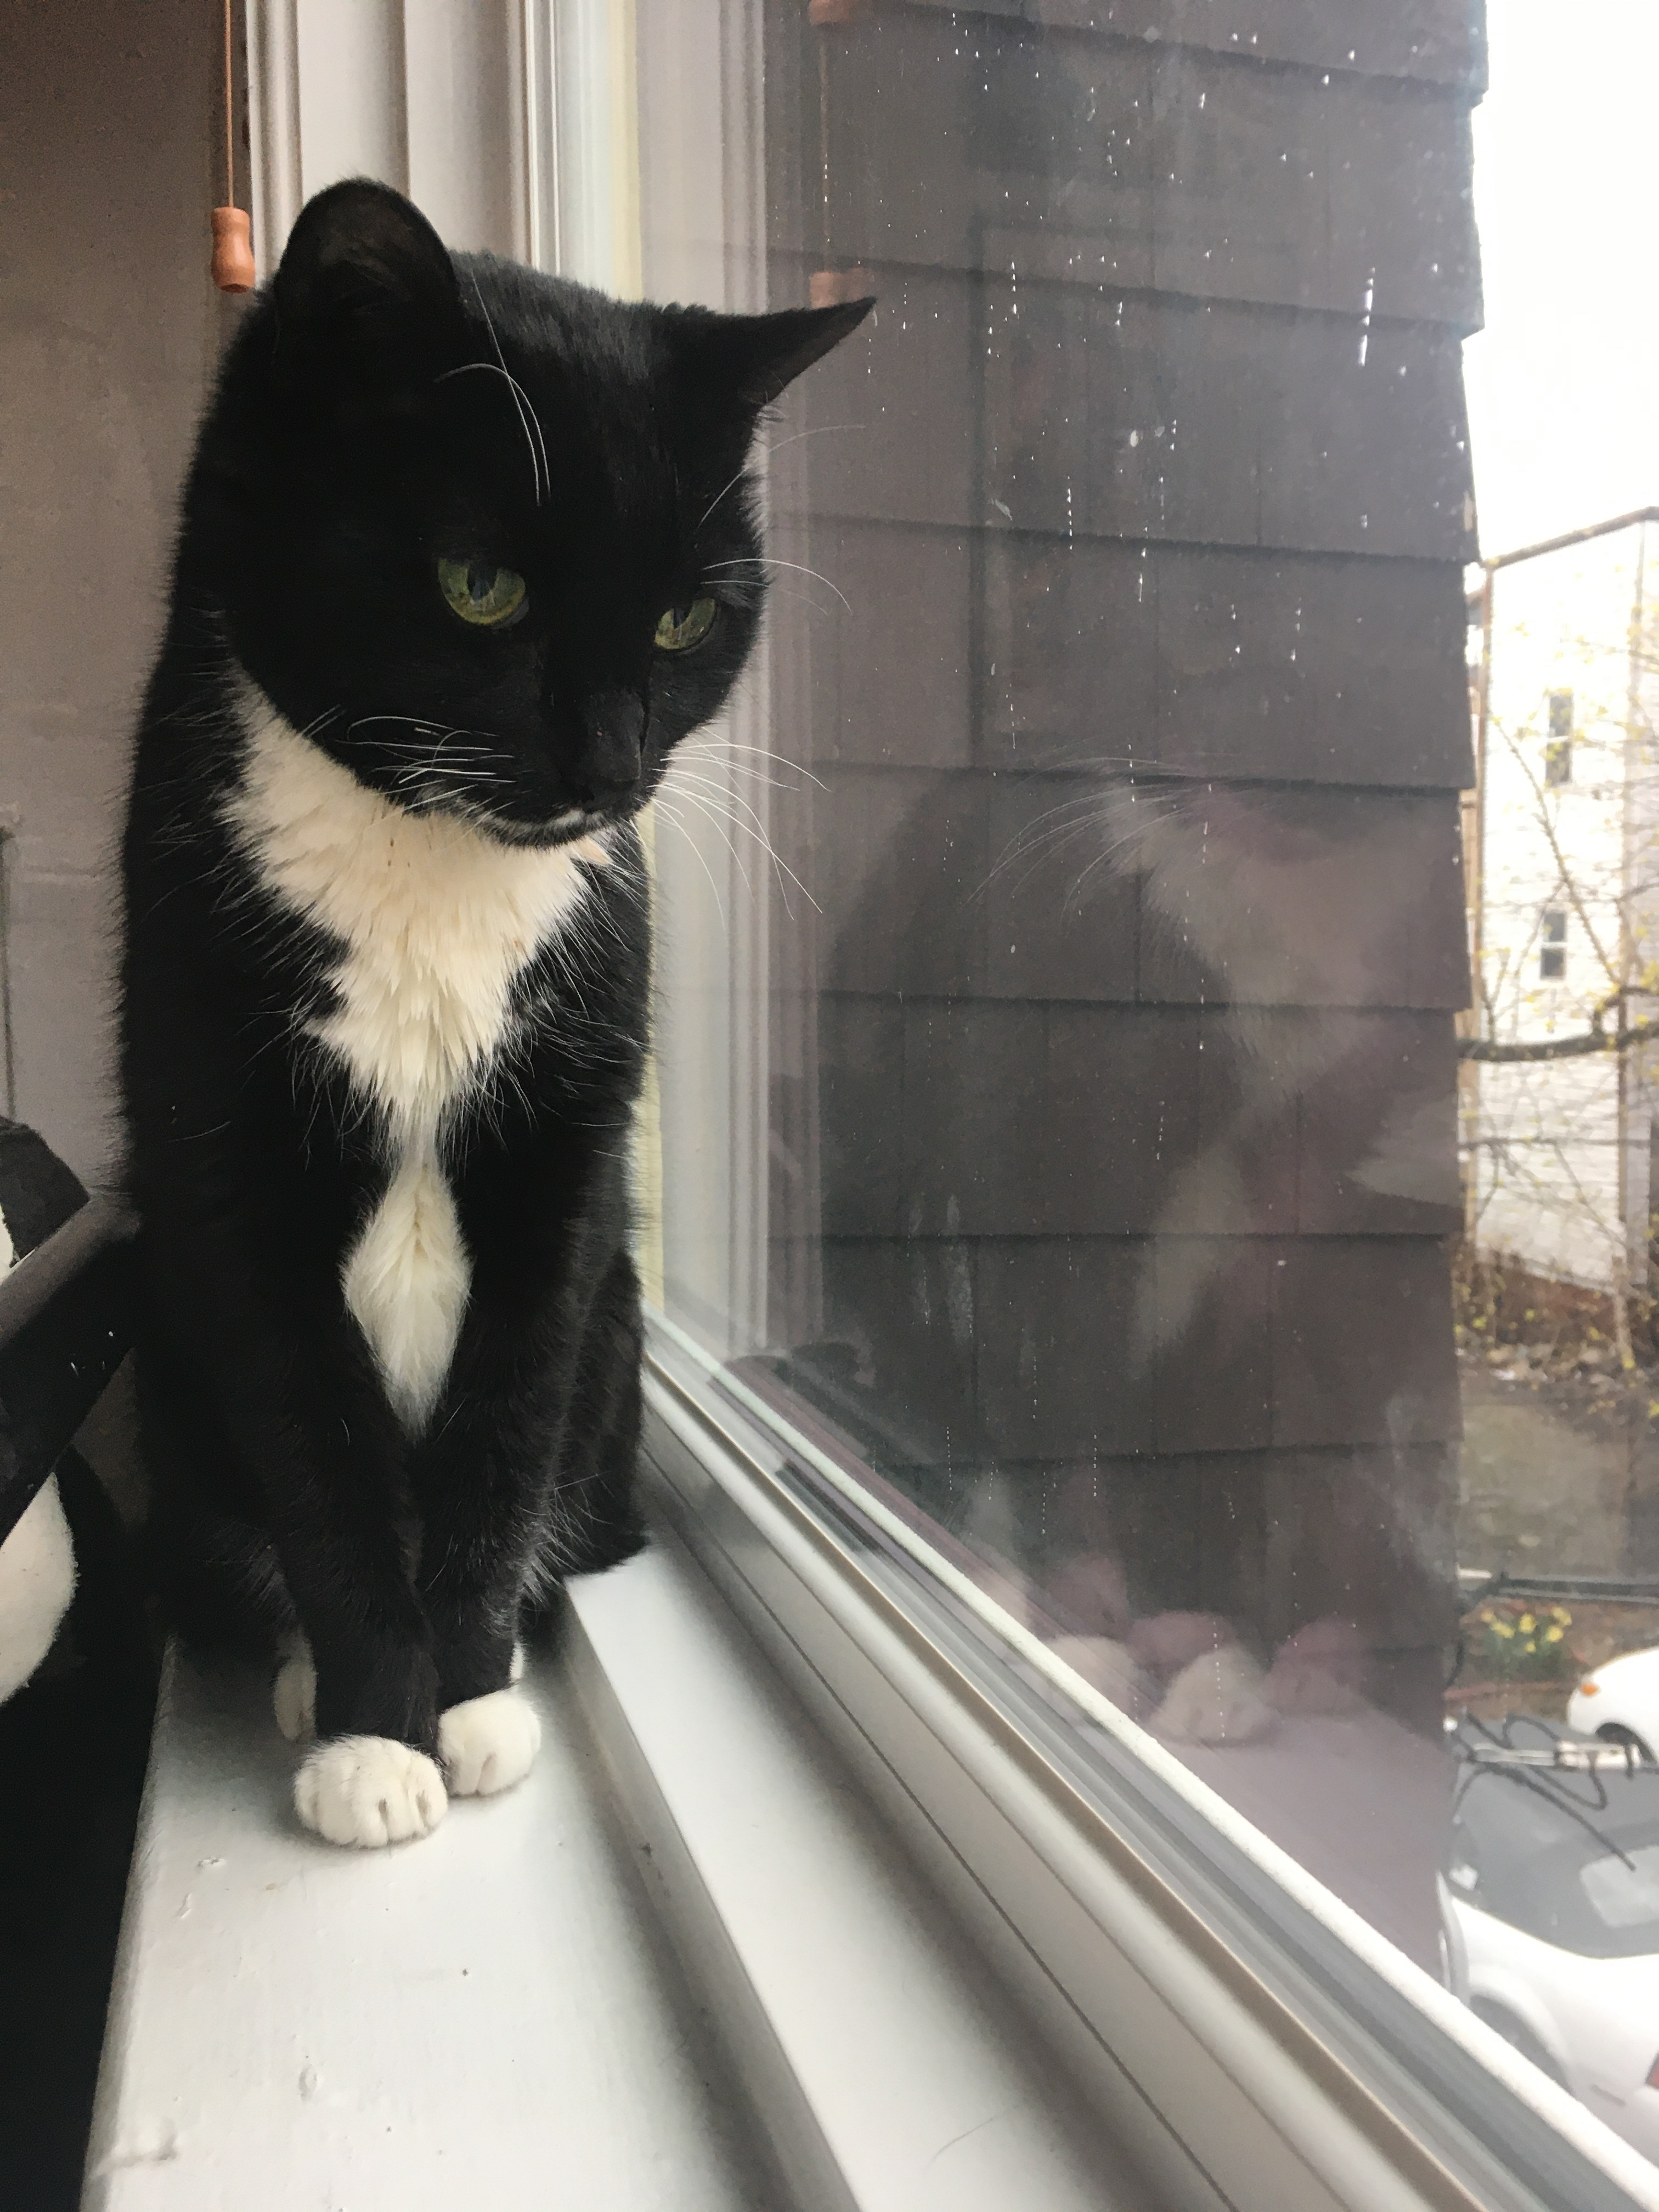 Black and white cat looking out a window